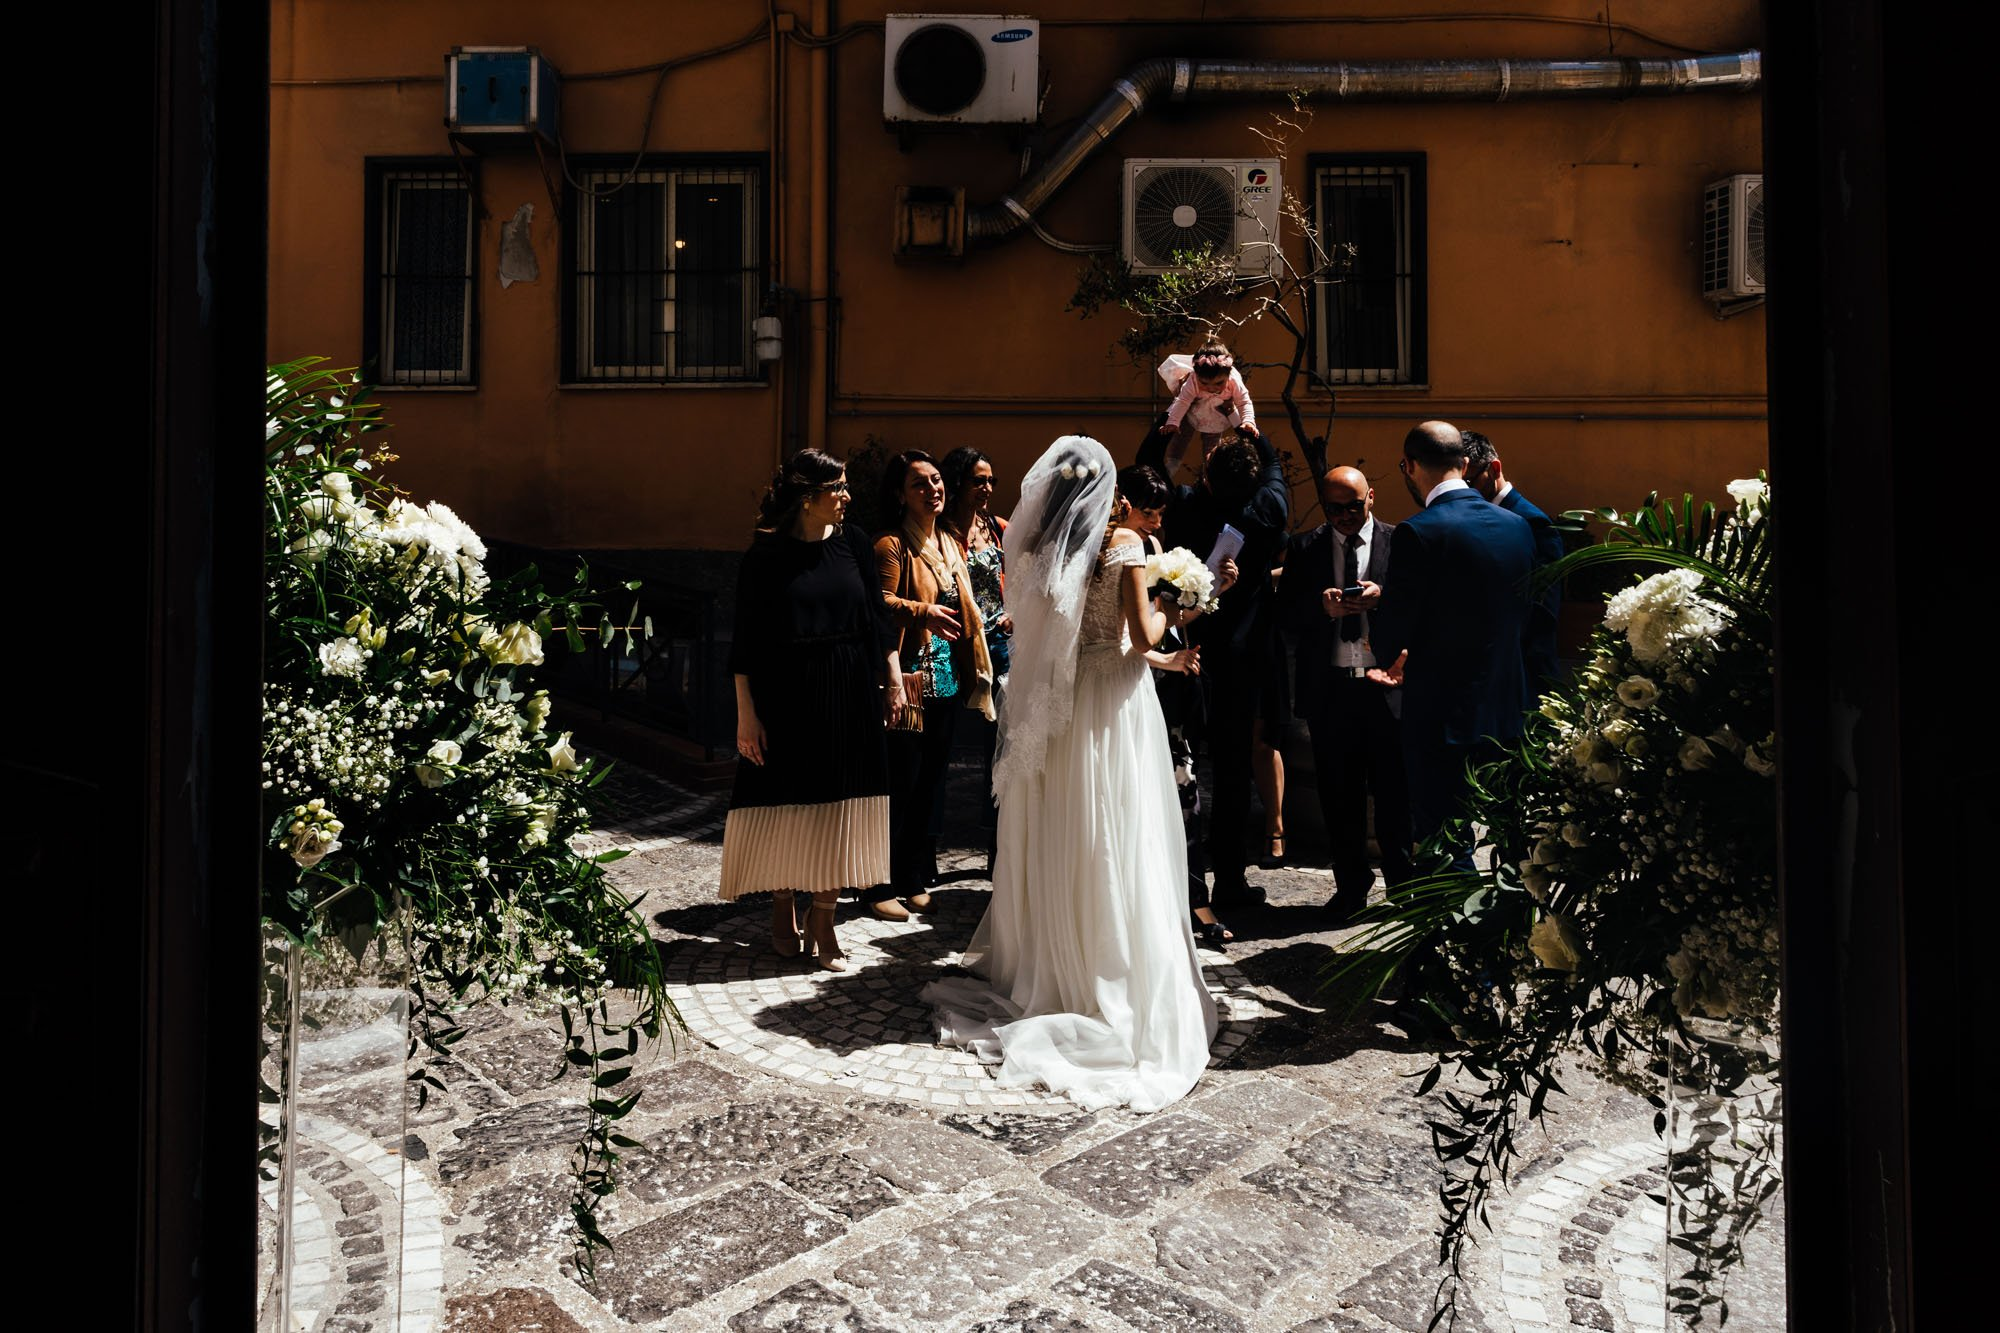 wedding-in-italy-mary-mimmo-36